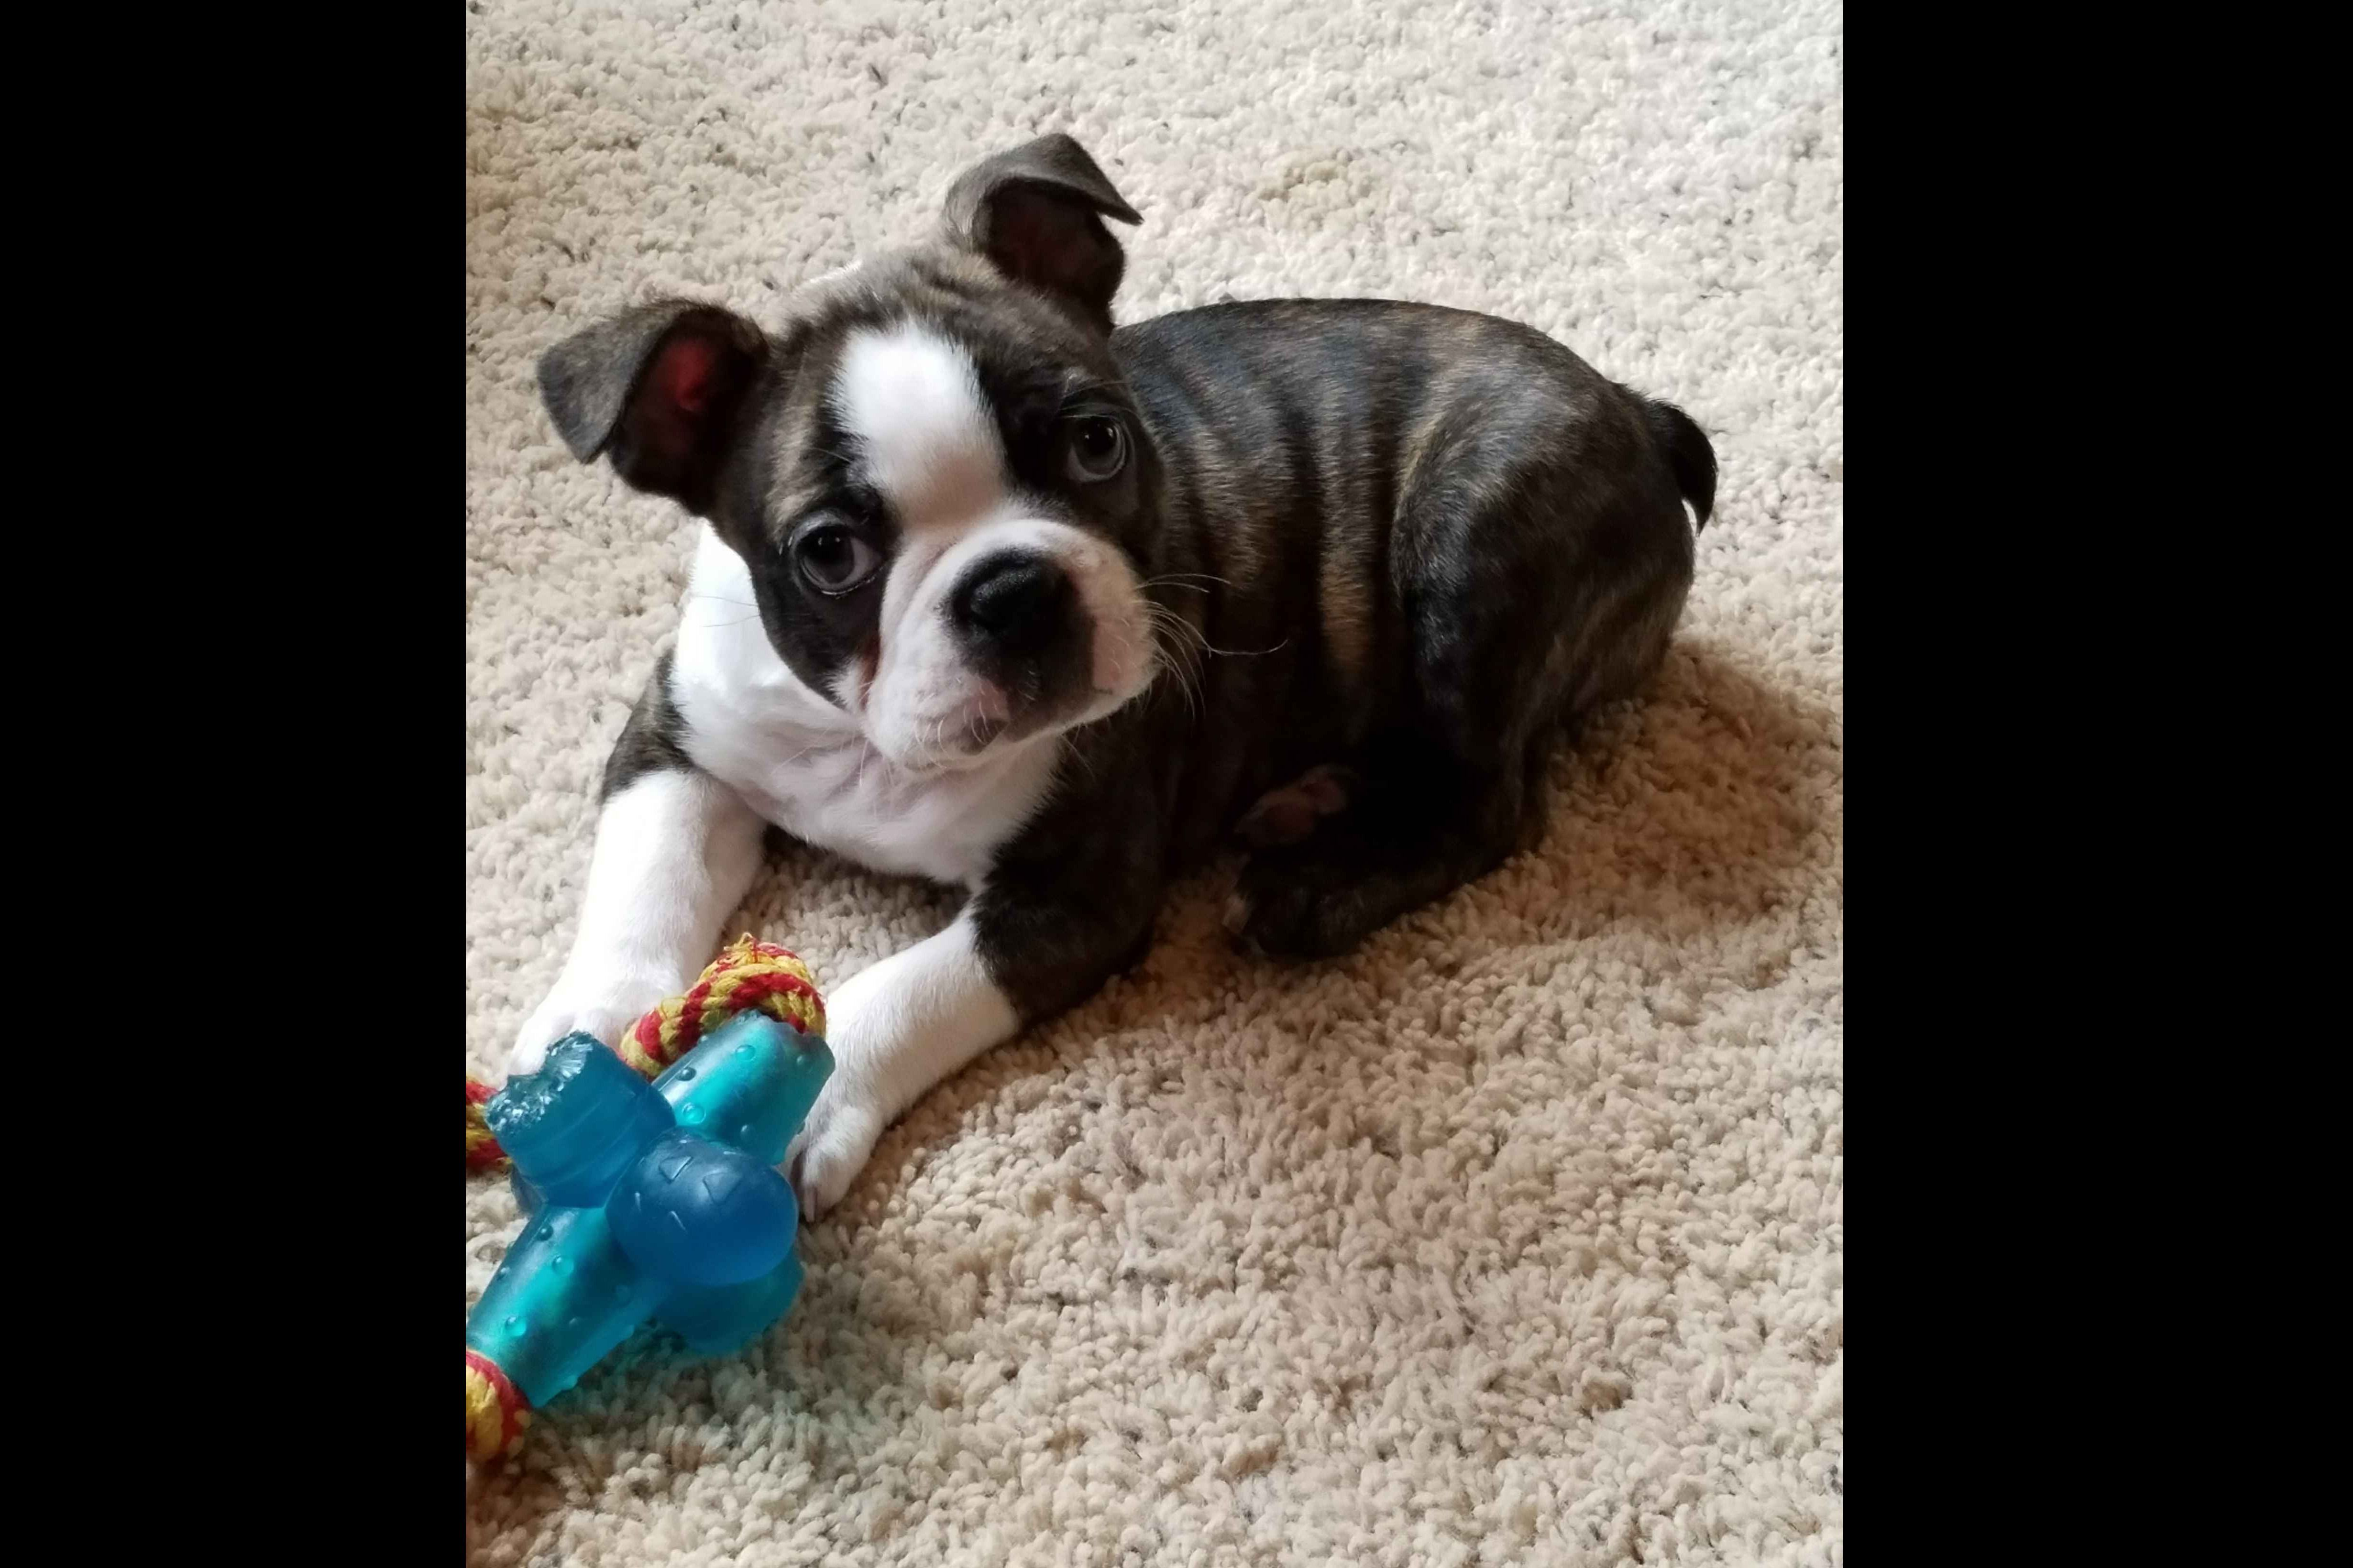 Kefi Bostons Has Boston Terrier Puppies For Sale In Ann Arbor Mi On Akc Puppyfinder Boston Terrier Boston Terrier Puppy Boston Terrier Breeders